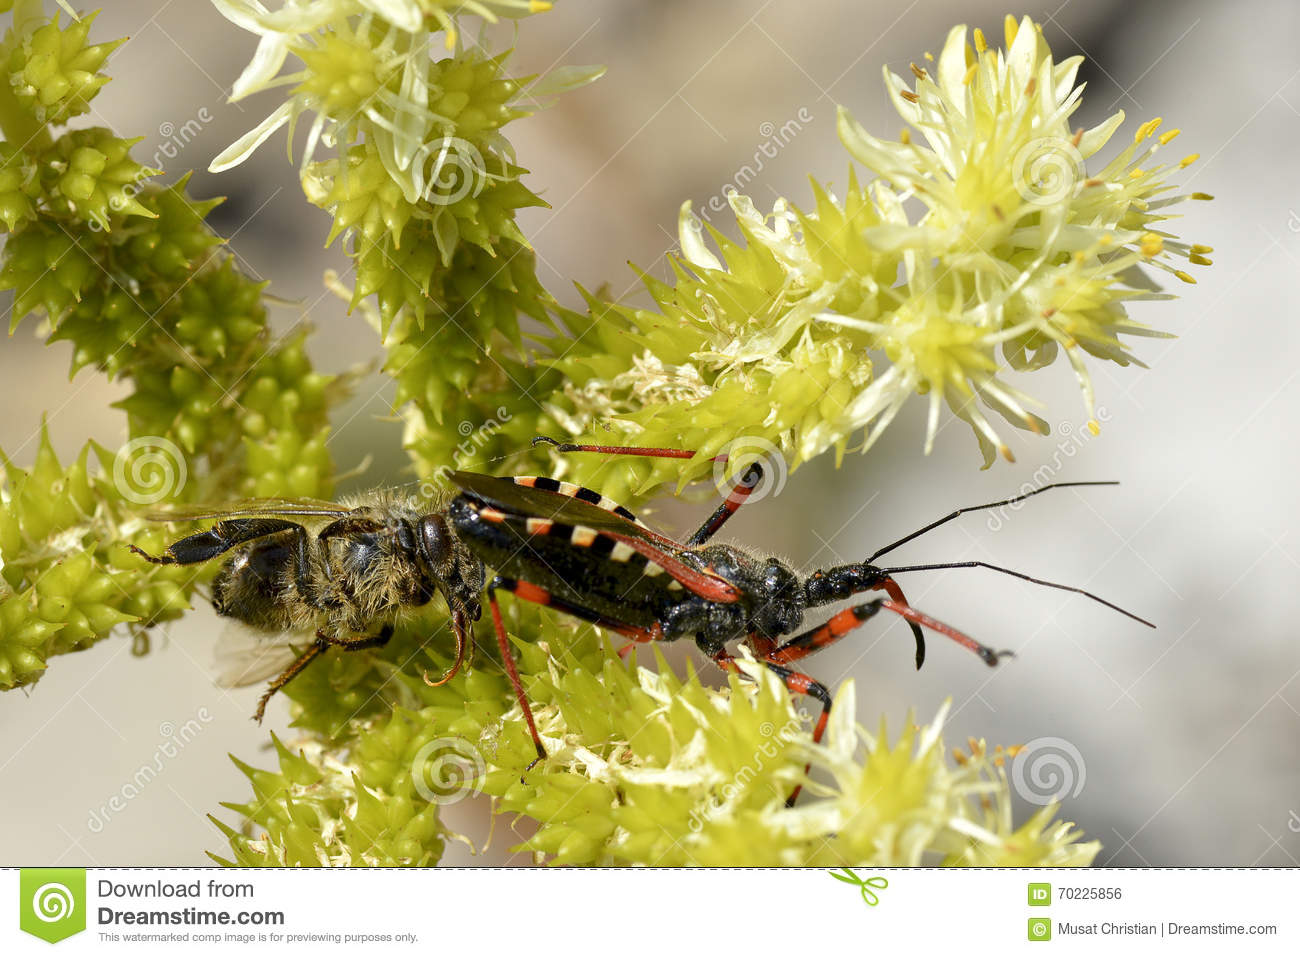 Assassin Bug Eating A Japanese Beetle Stock Photo.